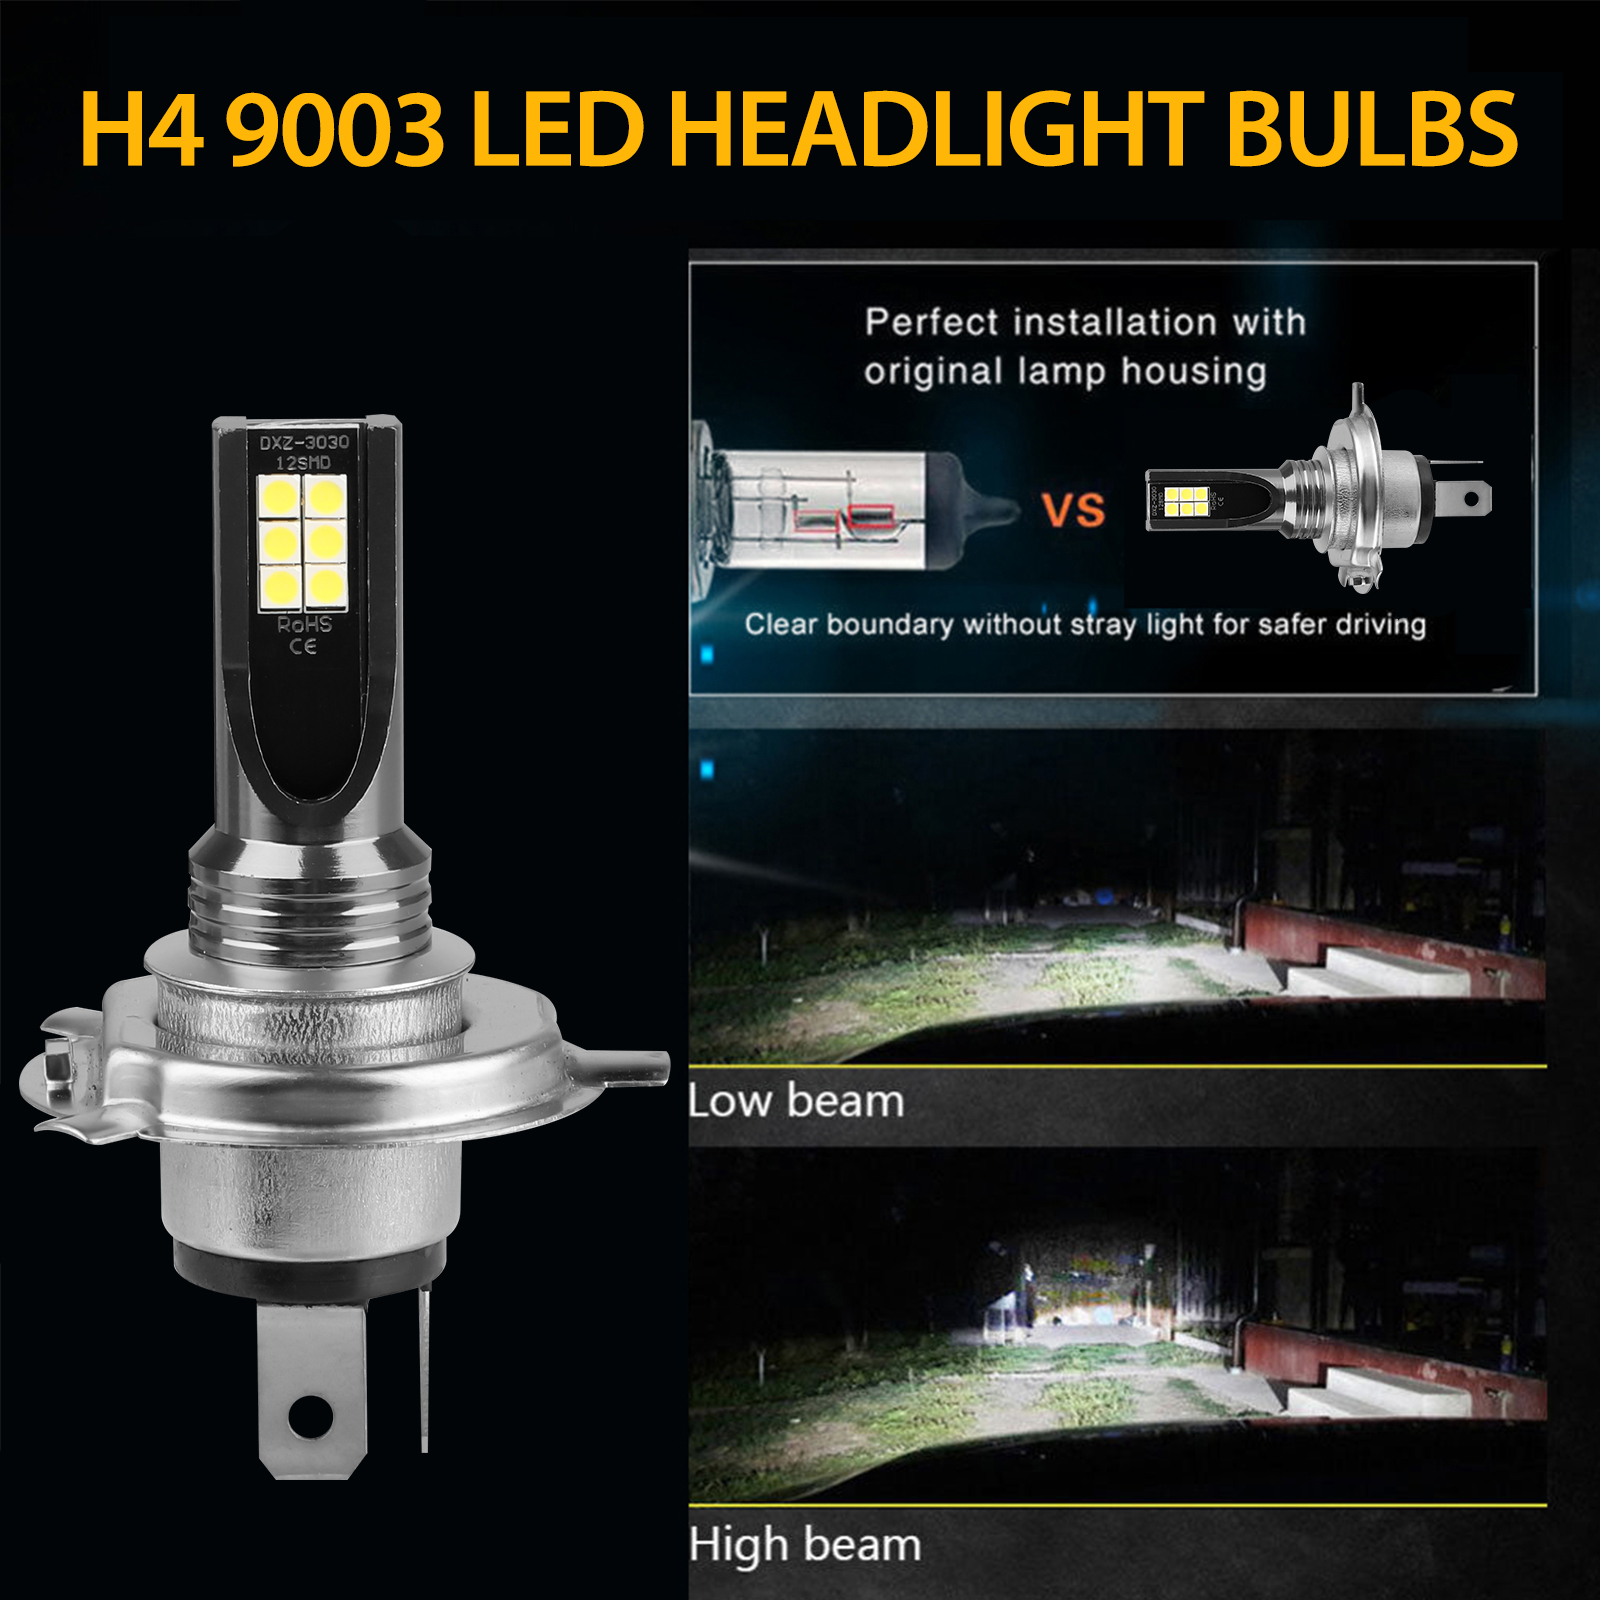 2X-H4-9003-LED-Headlight-Bulbs-Kit-High-Low-Beam-Super-Bright-100W-14000LM-6000K thumbnail 5